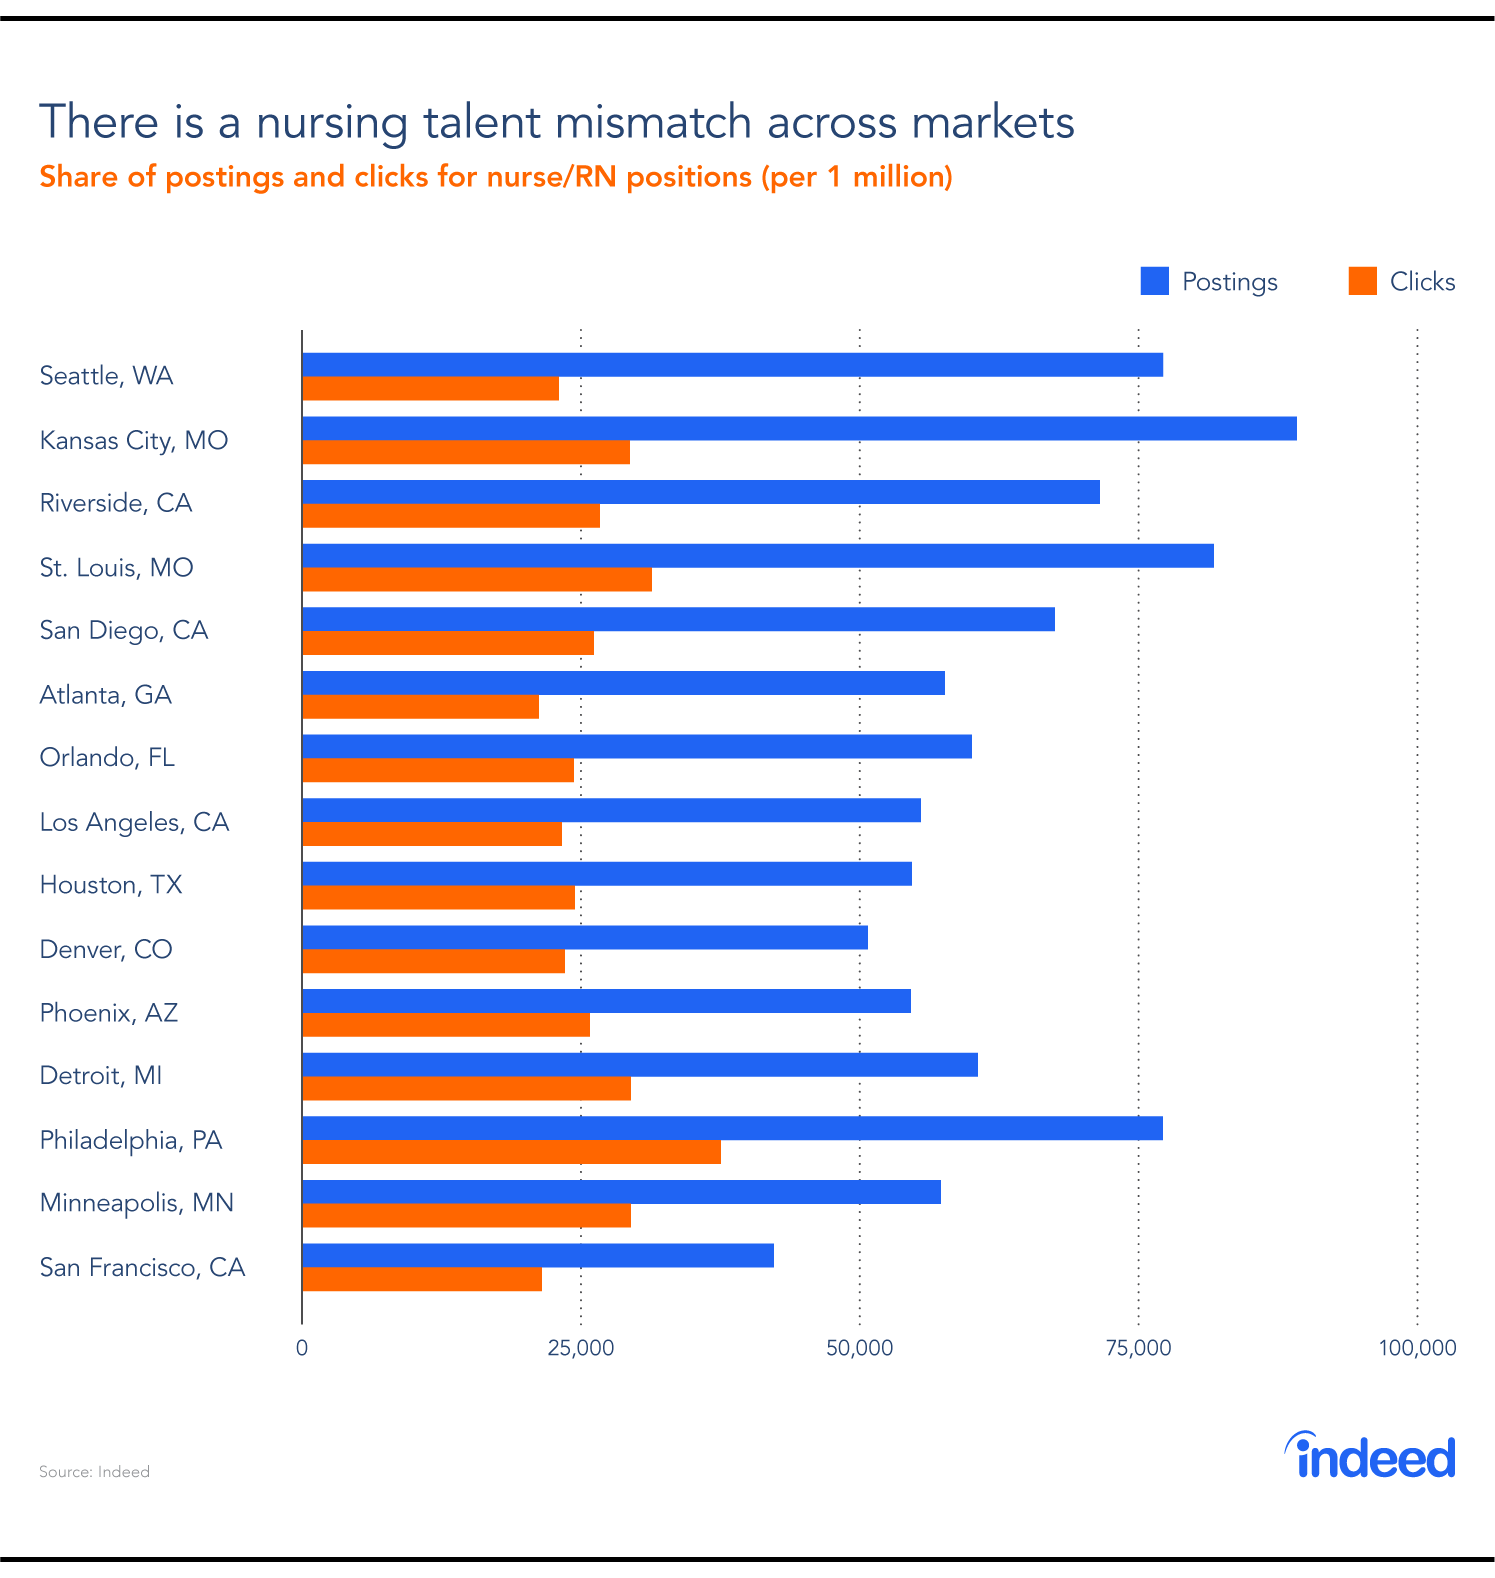 Bar graph showcasing the mismatch between nursing job postings and RN/nurse candidate interest in the top metro areas in 2018.